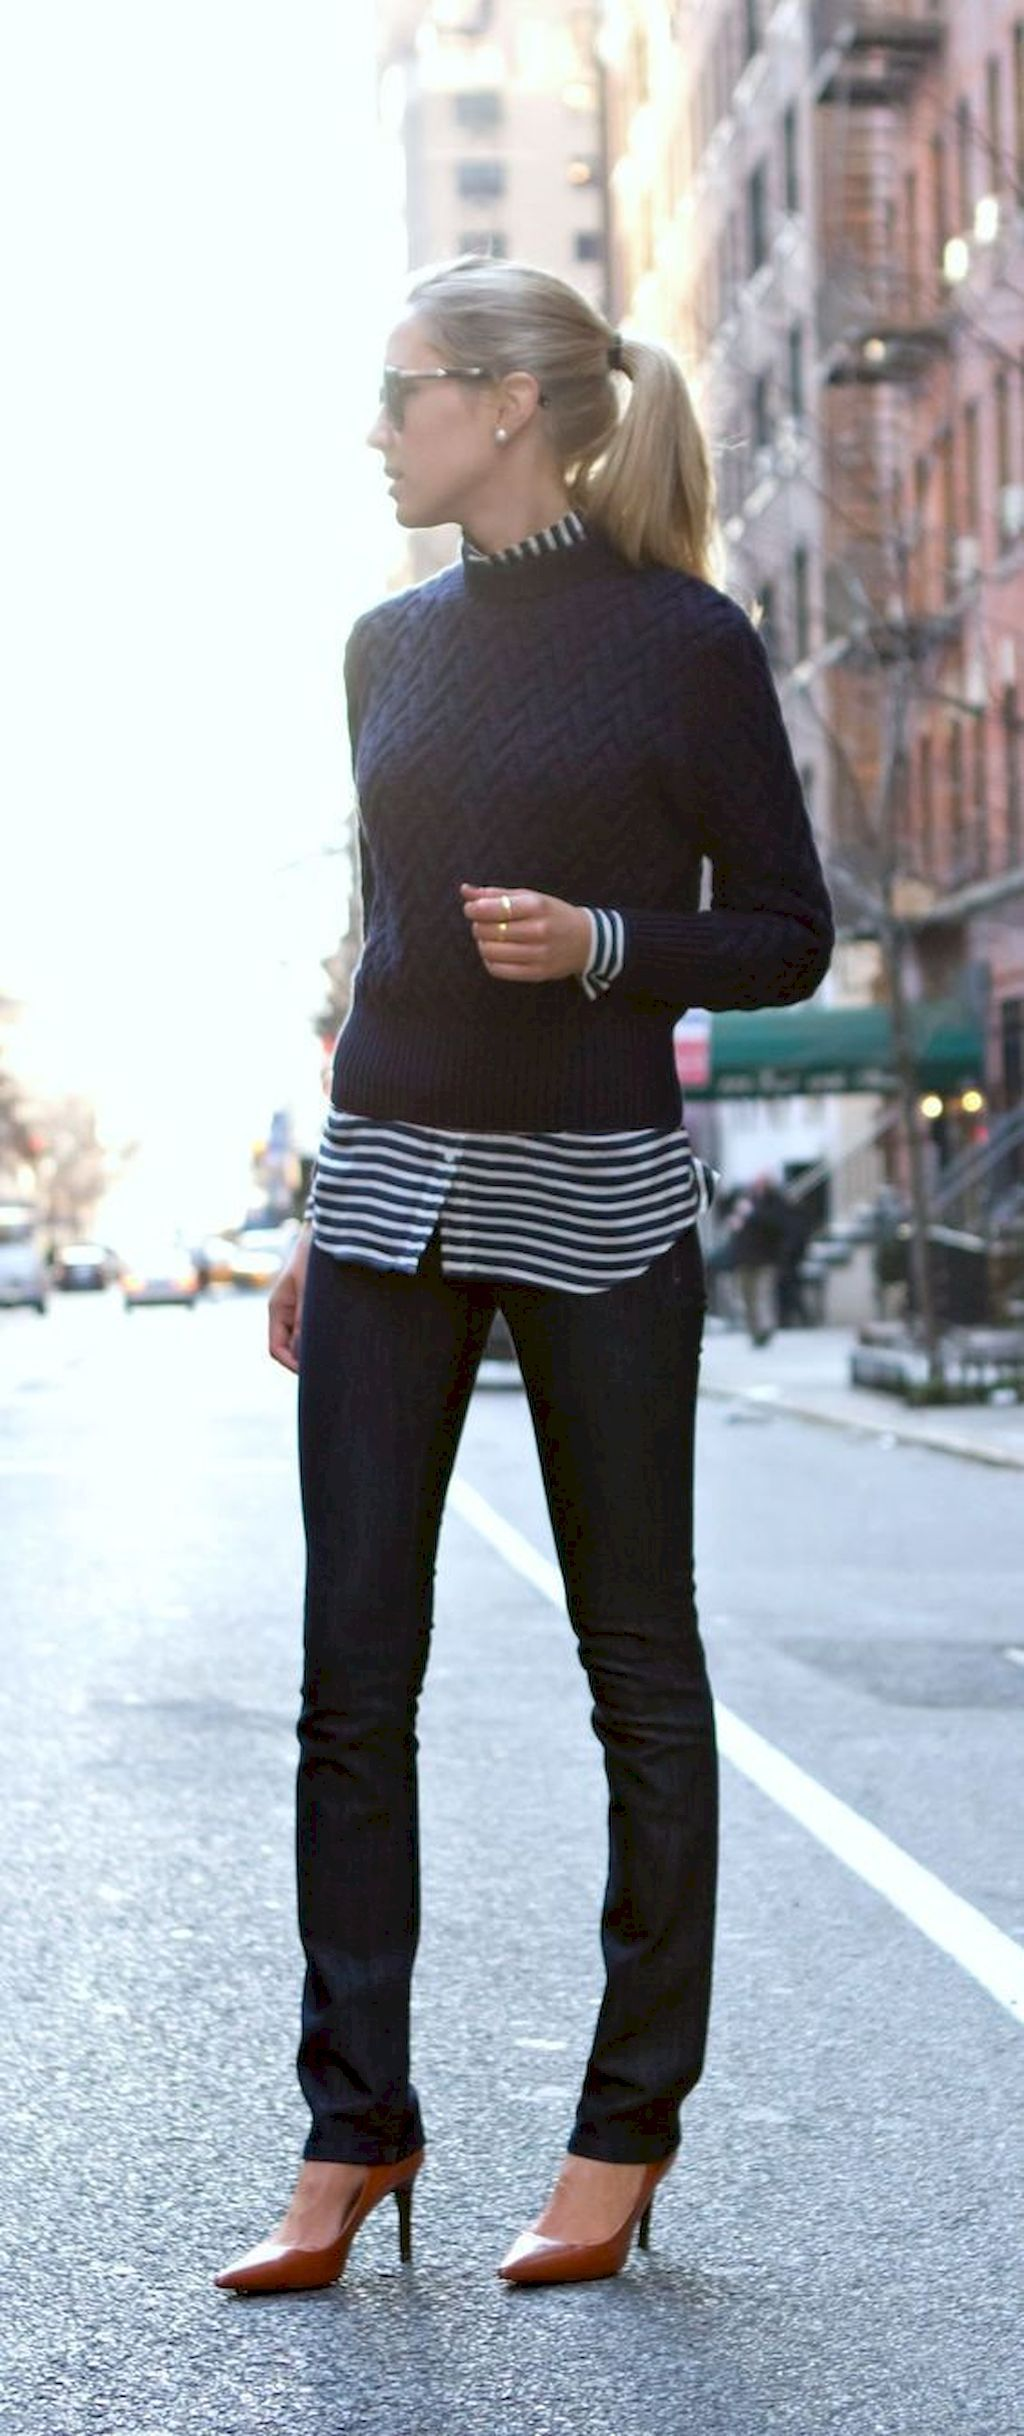 16 Professional Work Outfits Ideas for Women to Try #businessprofessionaloutfits